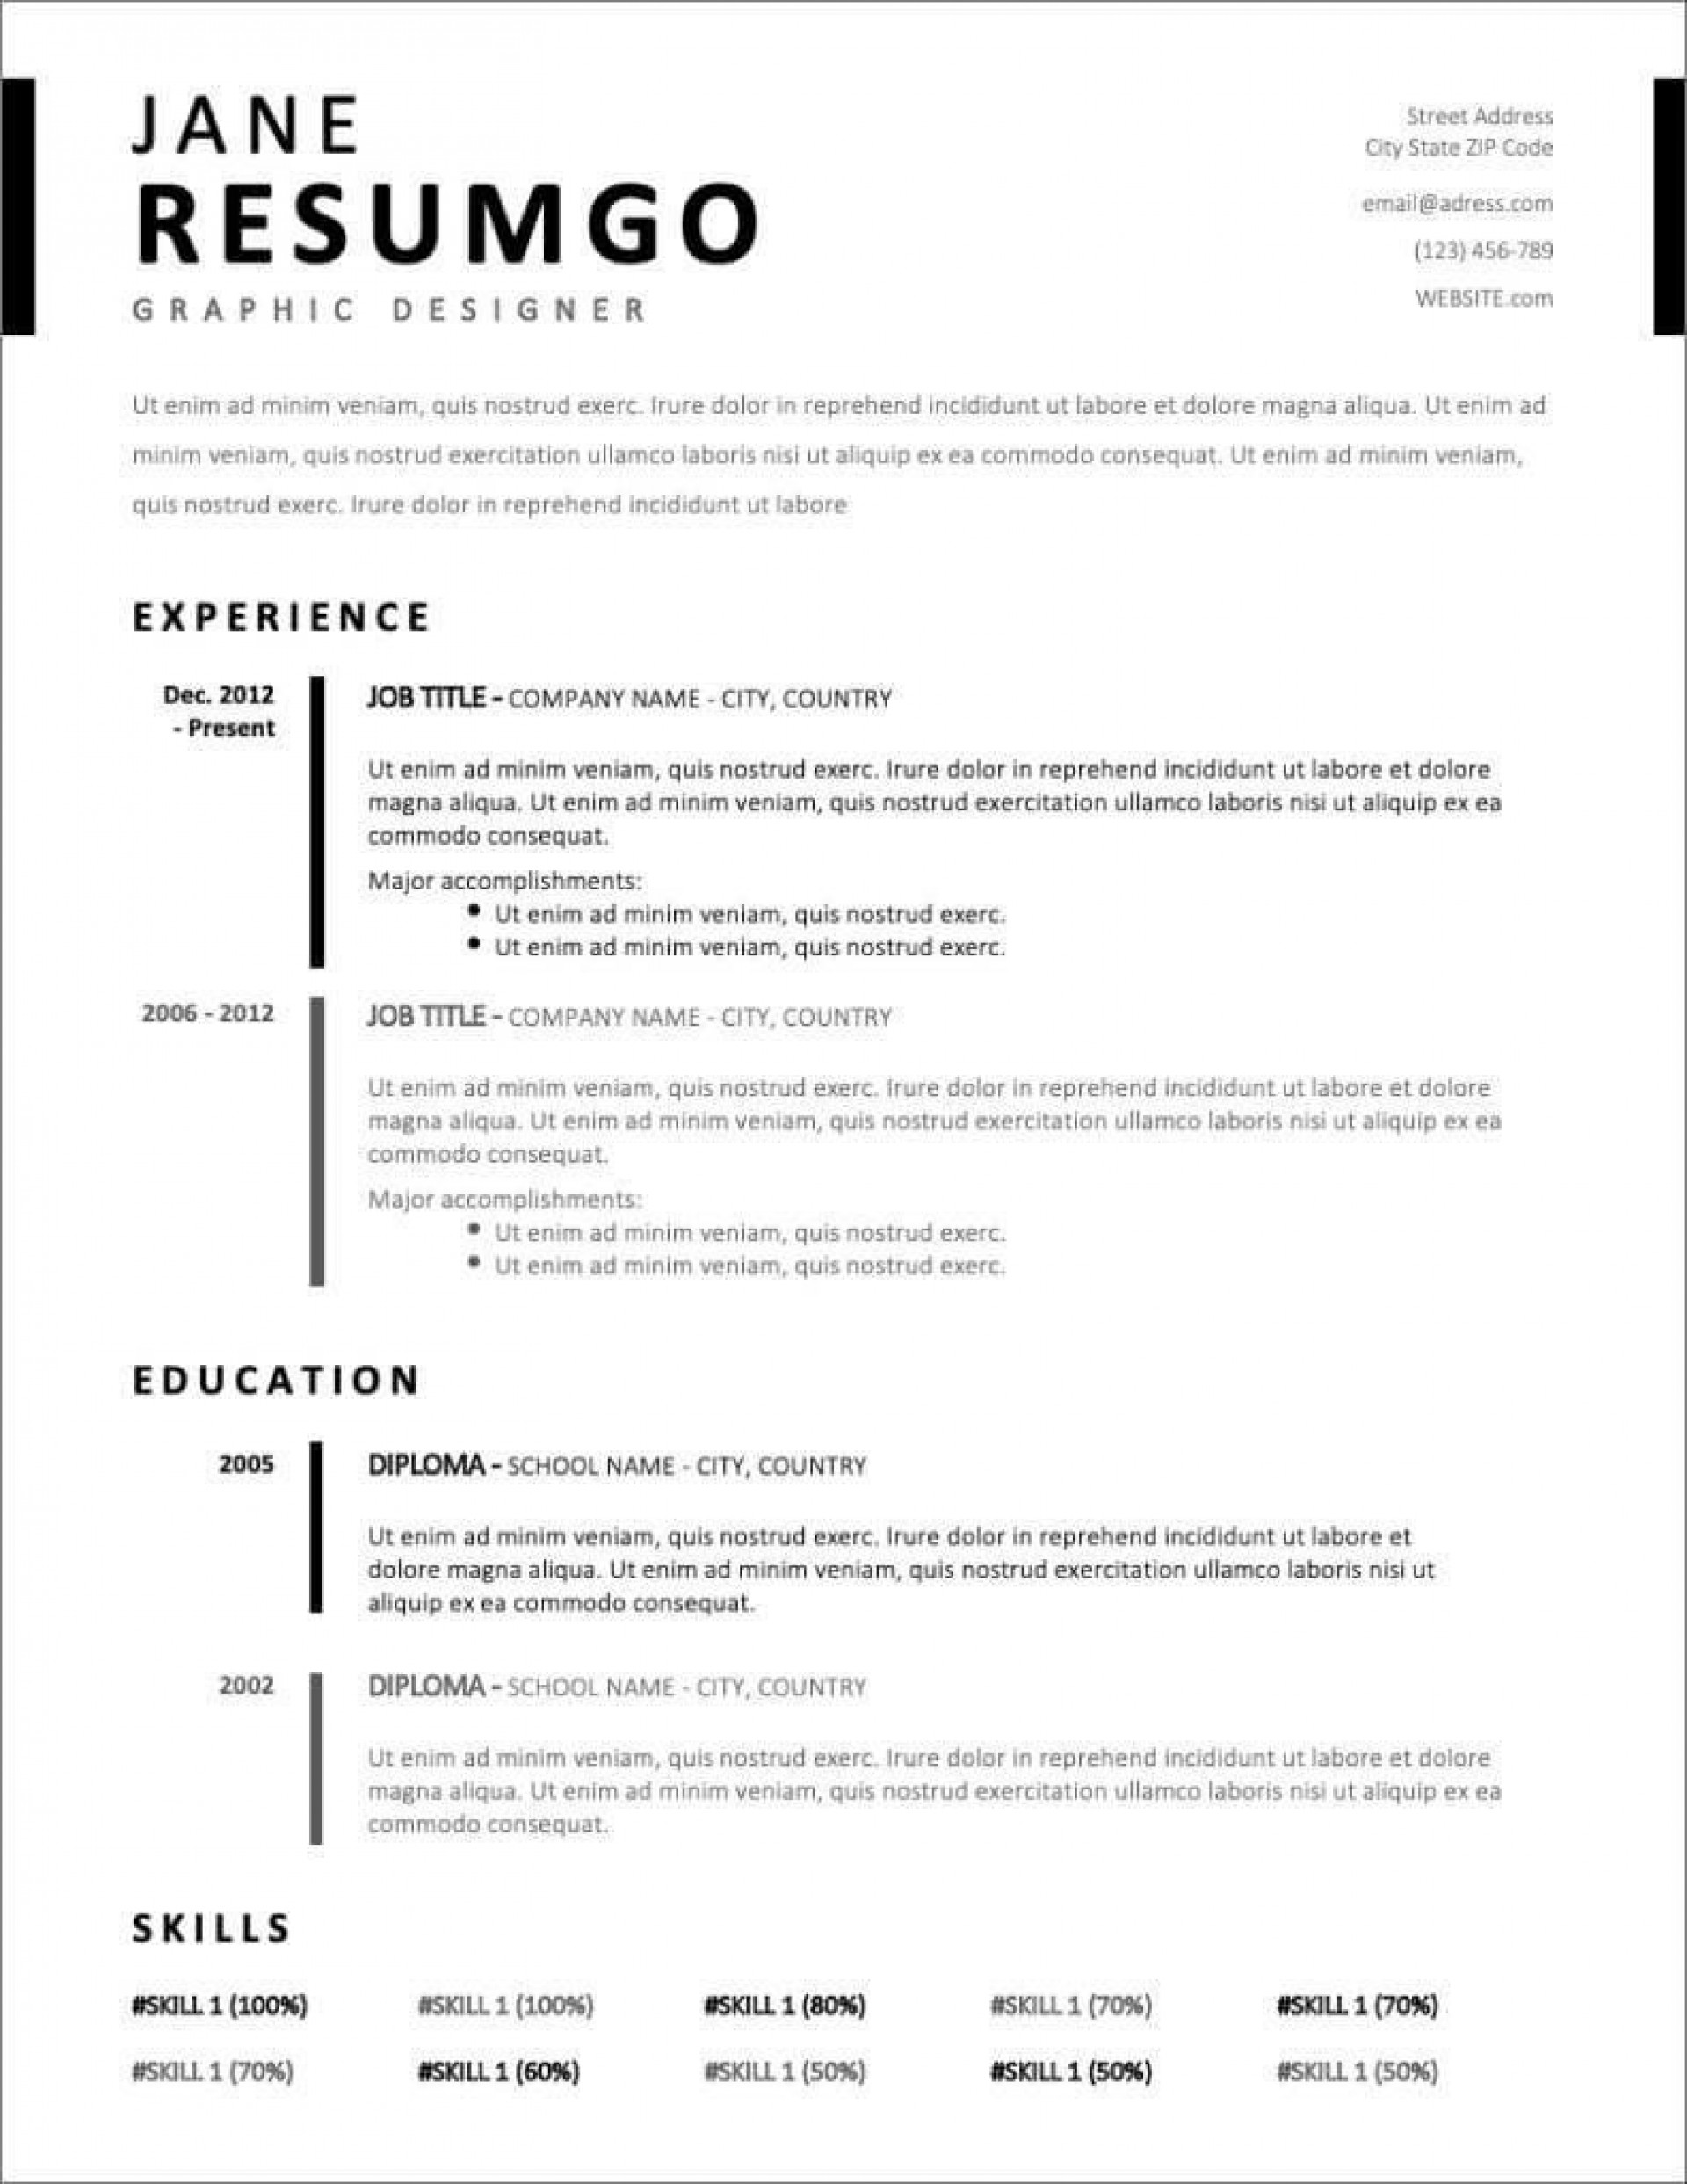 004 Rare Free Downloadable Resume Template Highest Clarity  Templates For Page Download Format Fresher Pdf1920